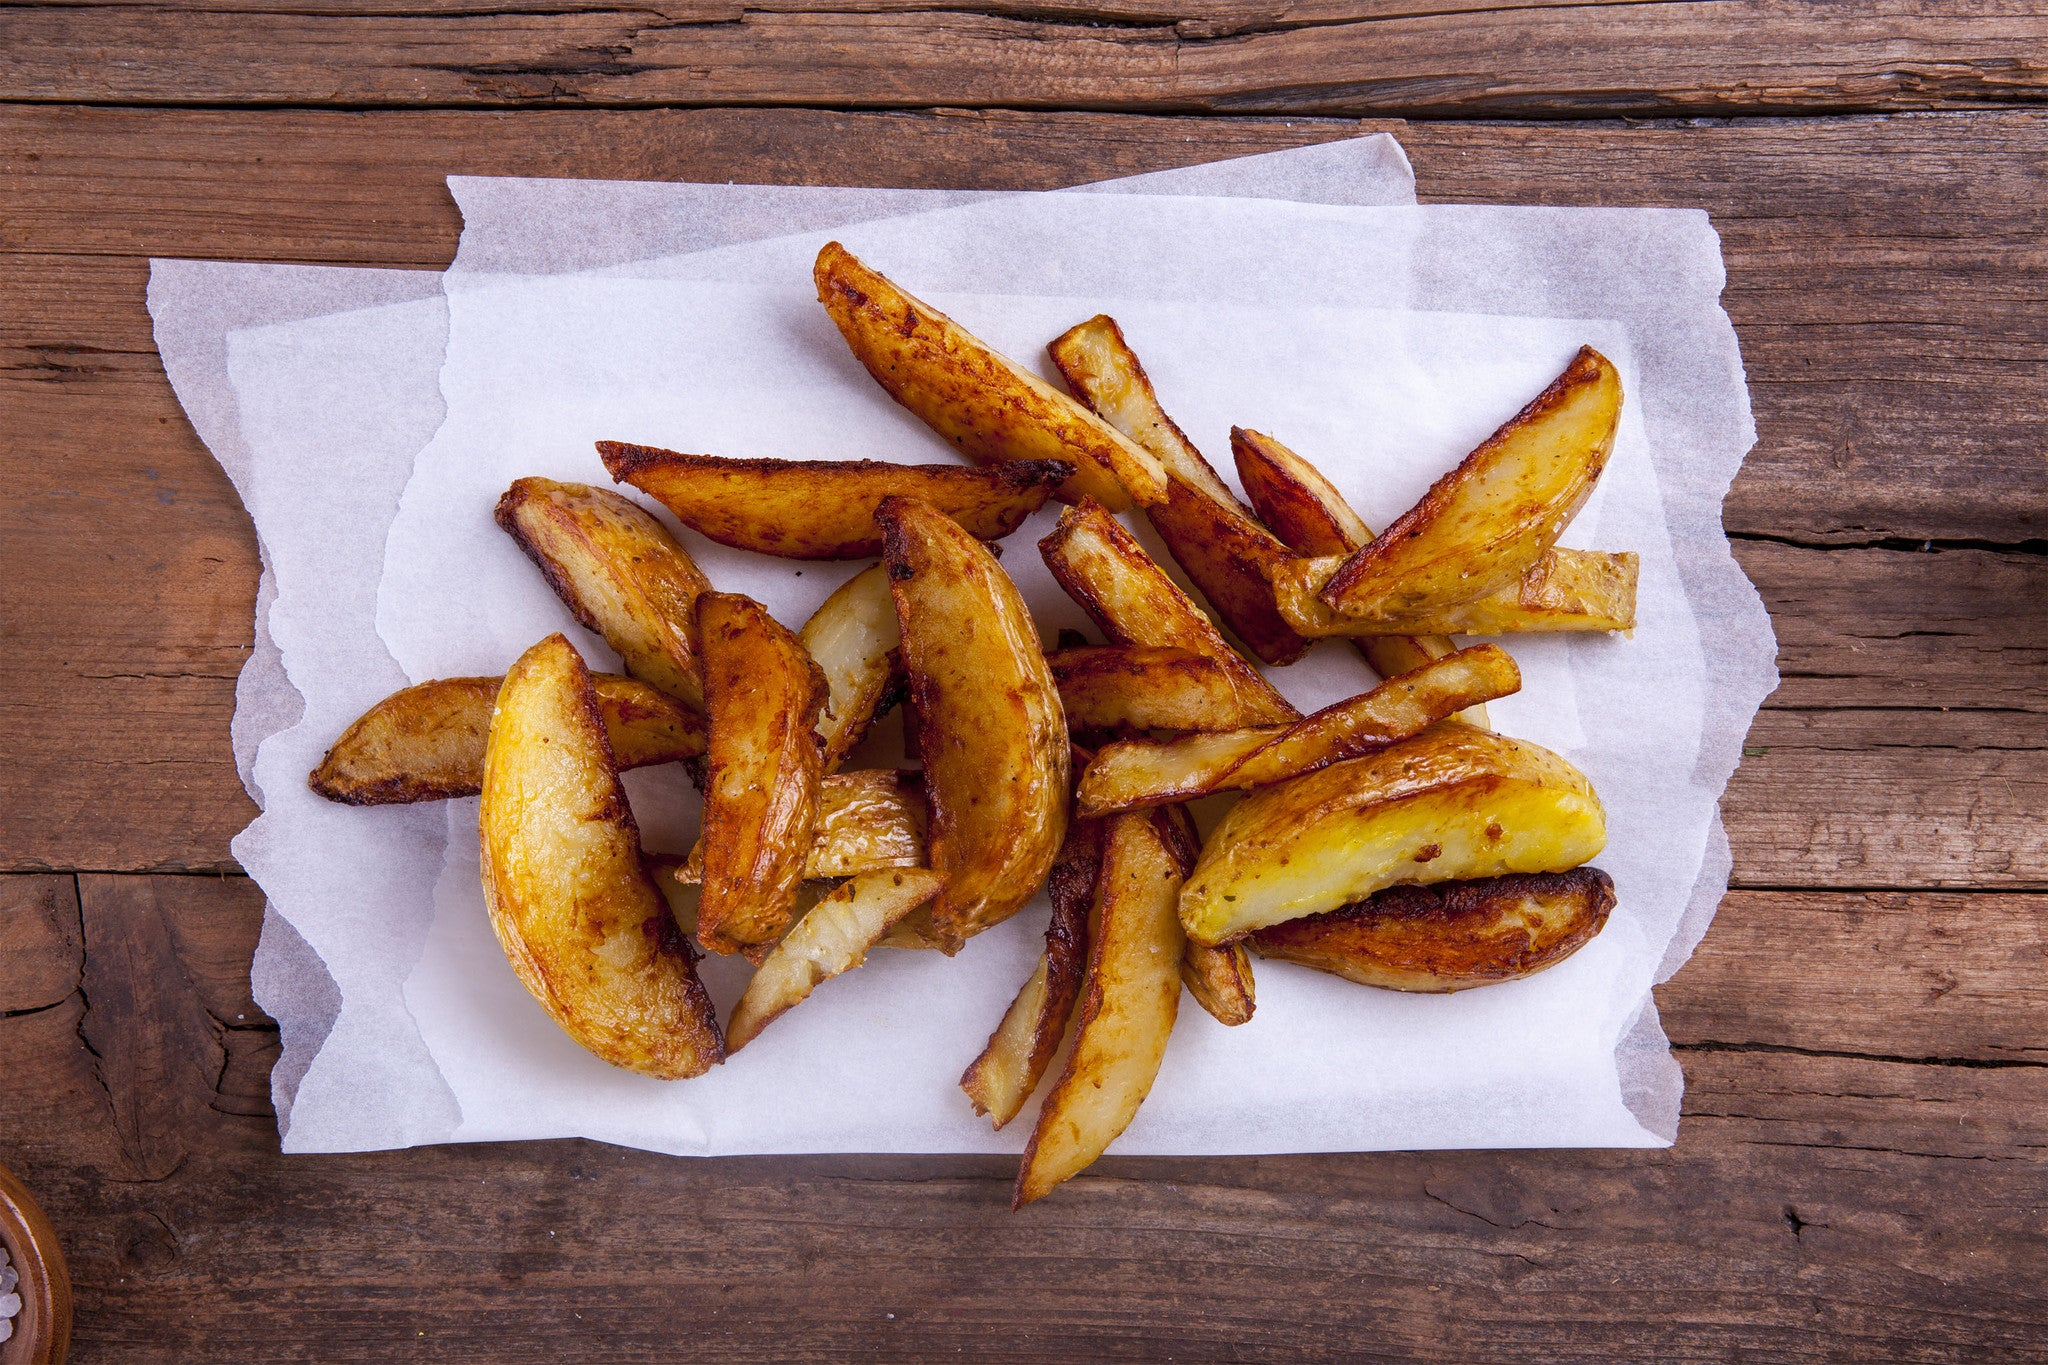 COMING SOON : Crunchy Potato wedges + Protein